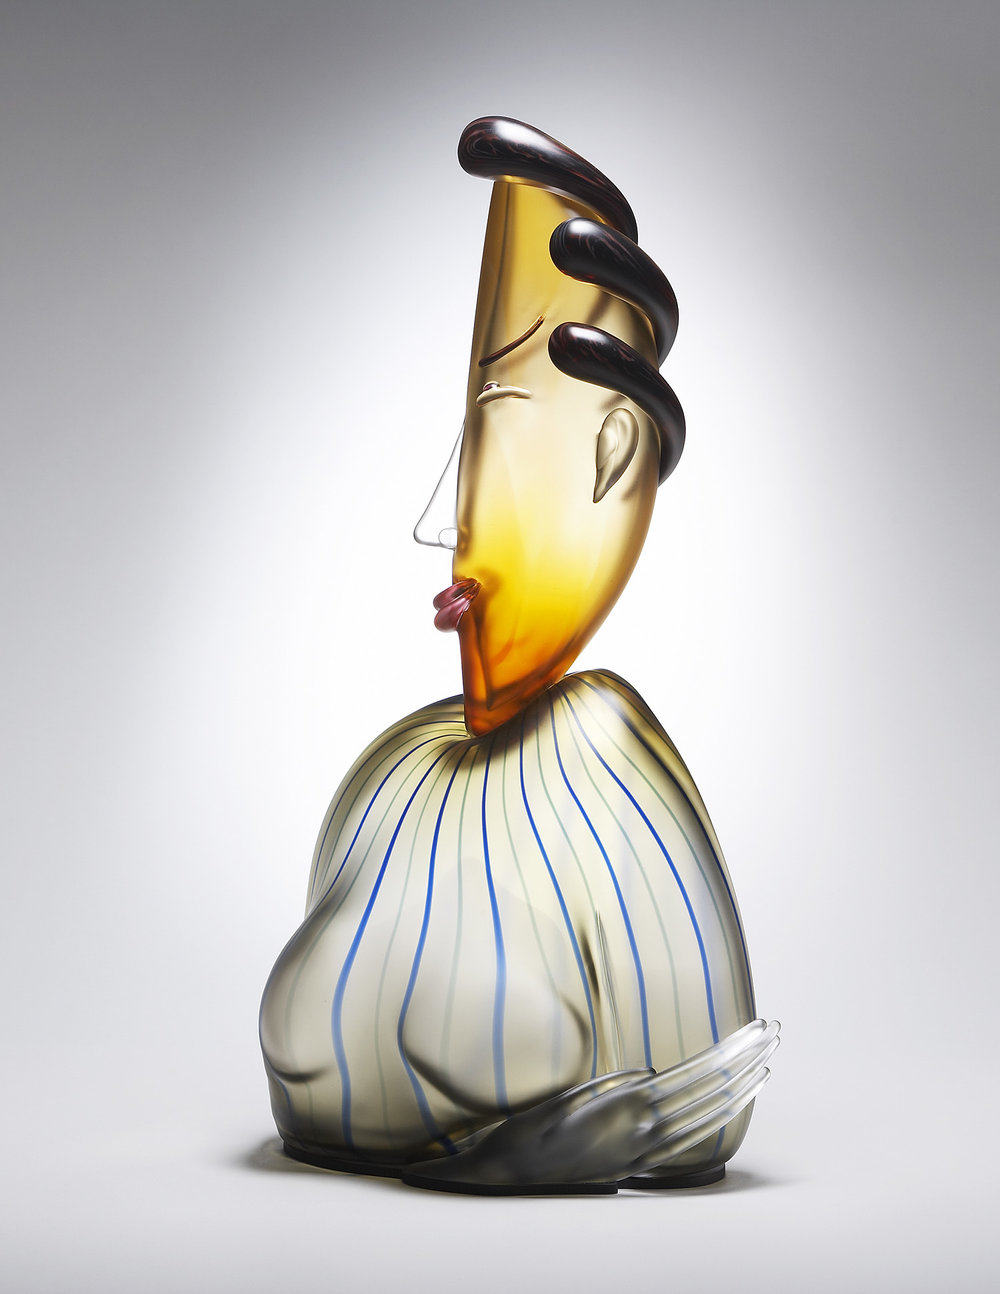 Virtue   2006. Blown glass, aluminum. 27 x 13 x 7""